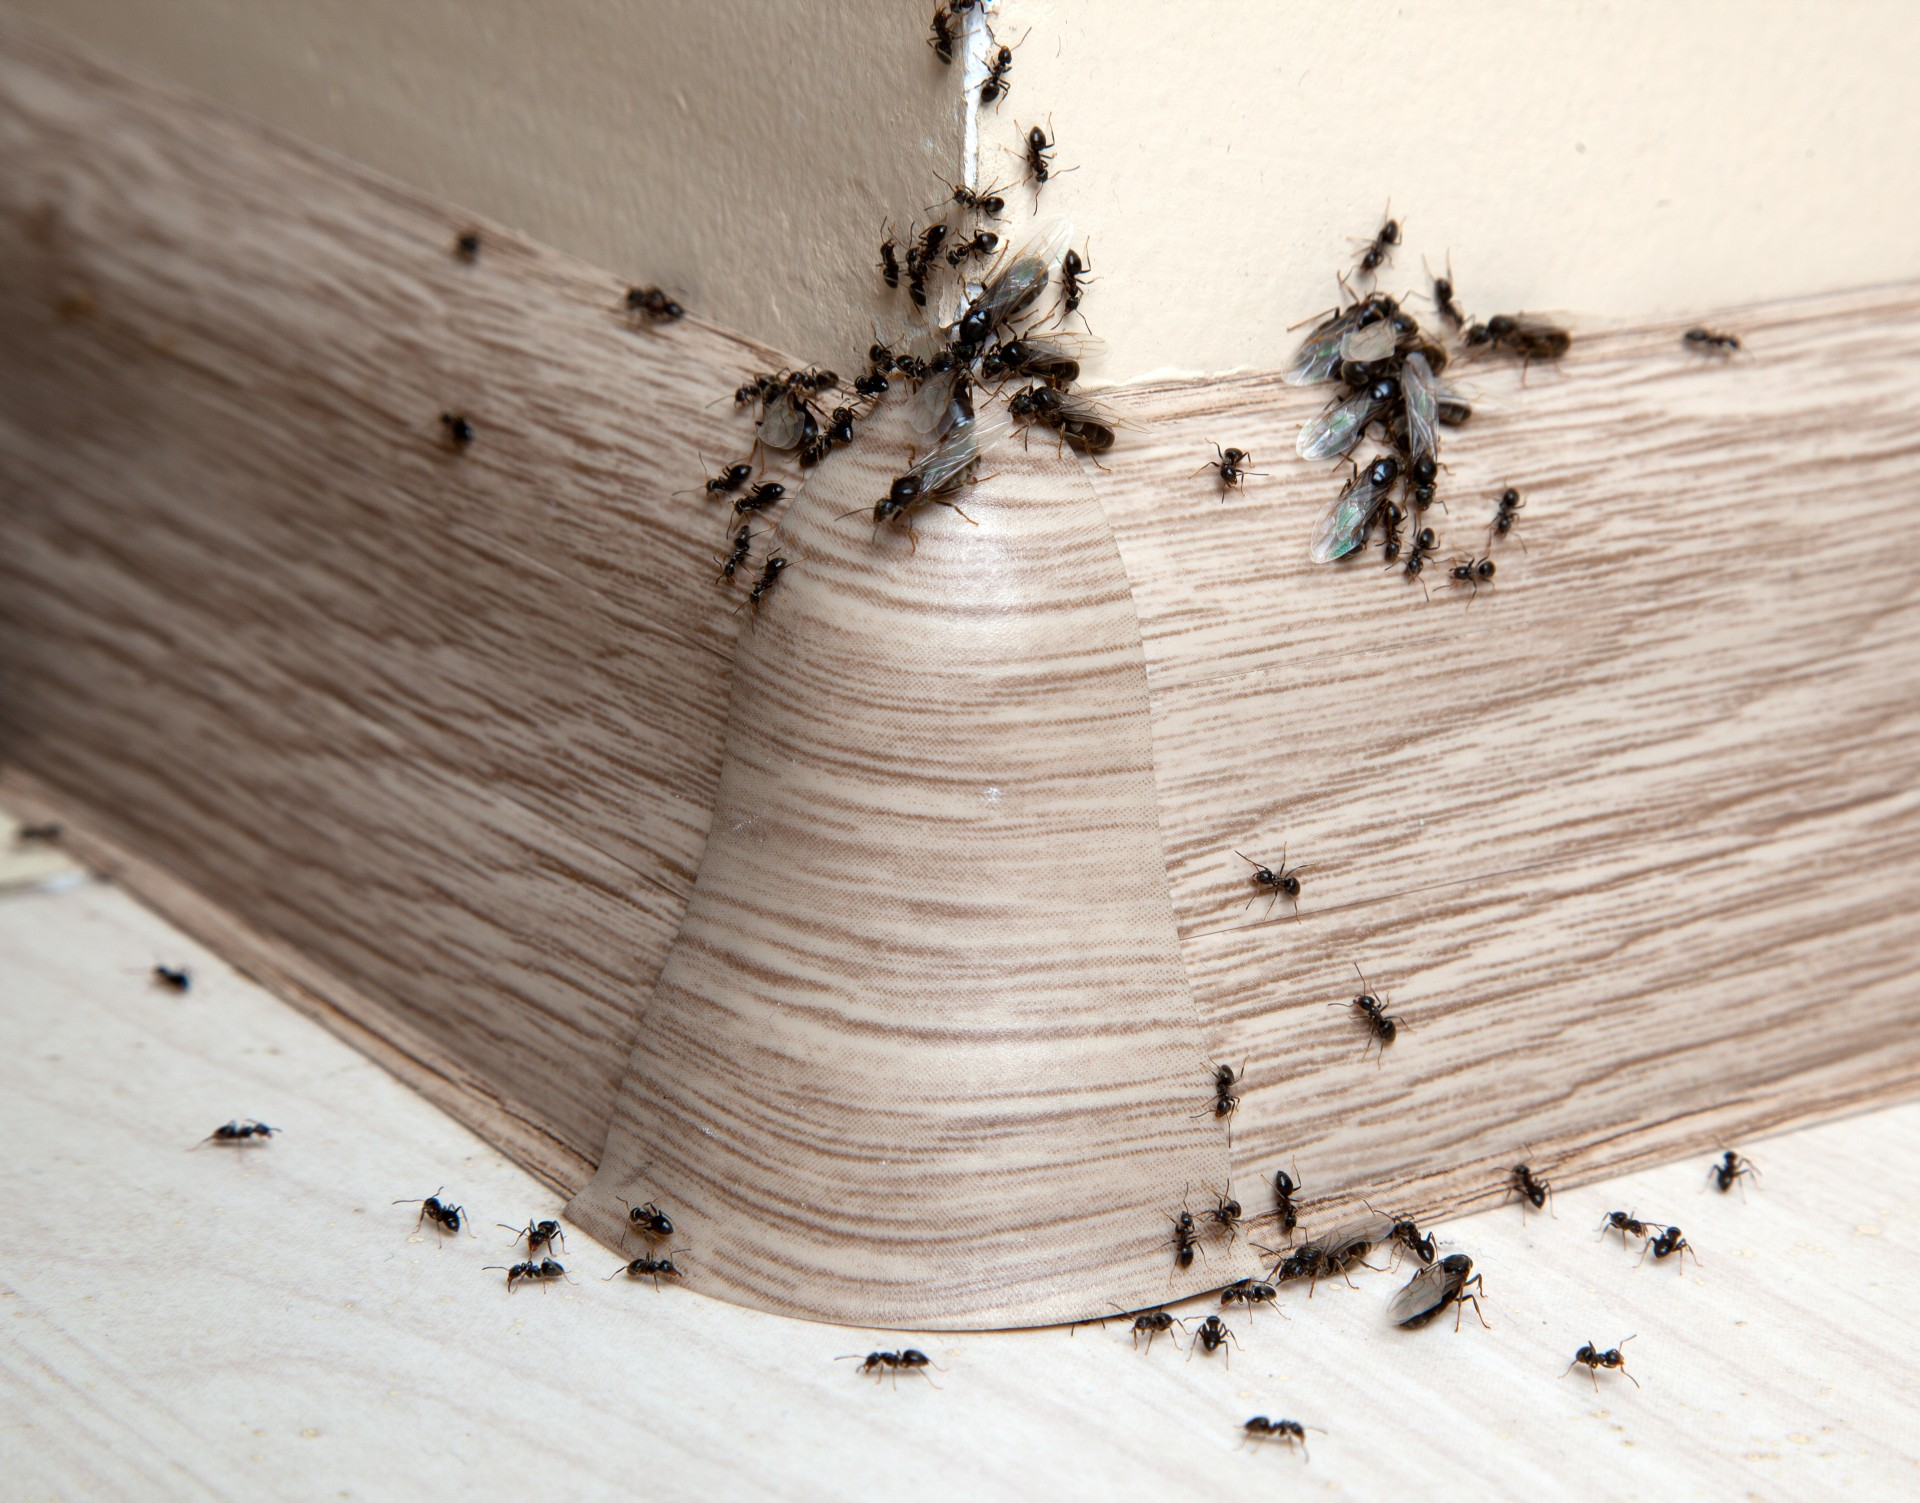 Ant Infestation, Pest Control in Leatherhead, Oxshott, Fetcham, KT22. Call Now 020 8166 9746